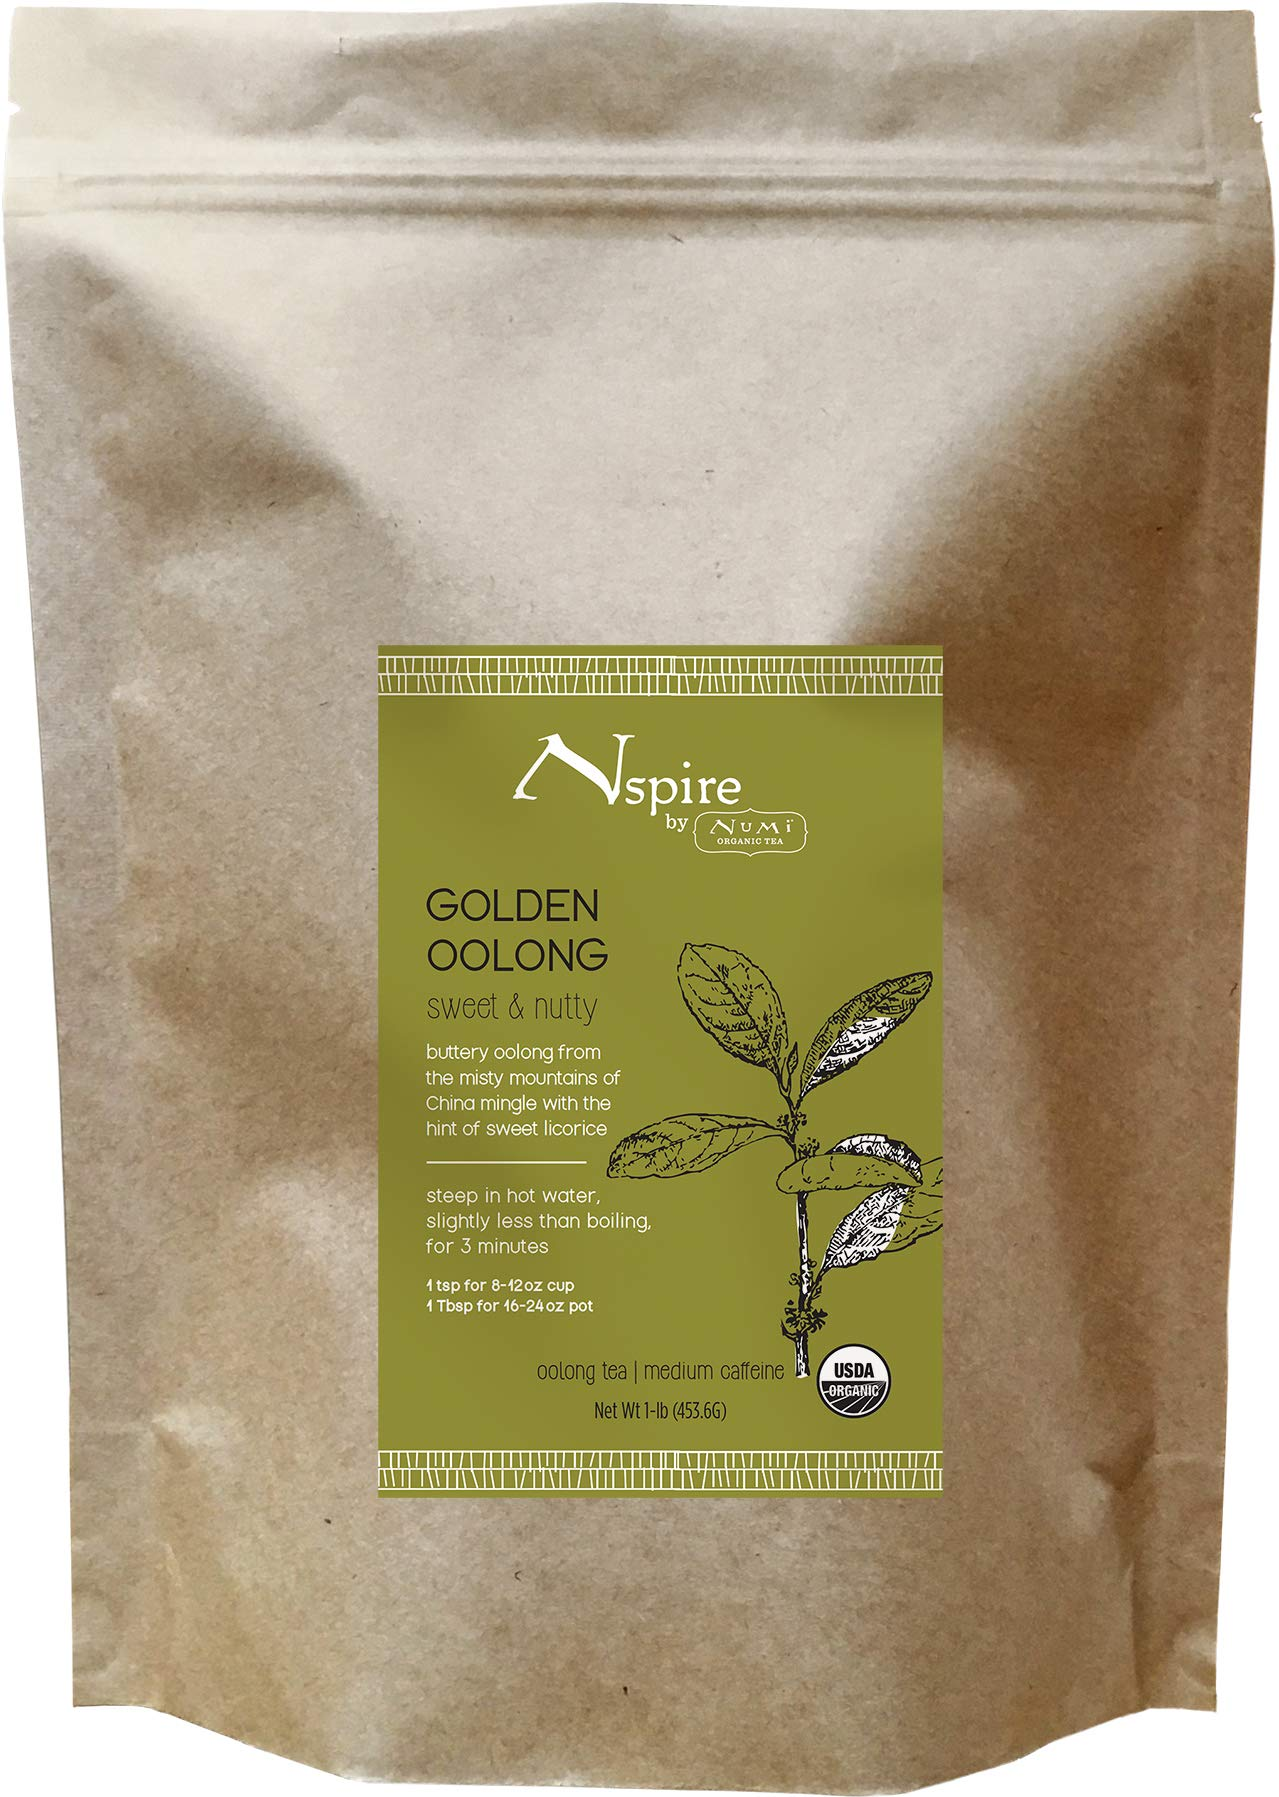 Nspire by Numi Organic Tea Golden Oolong, 16 Ounce Pouch, Loose Leaf Ti Kuan Yin by Numi